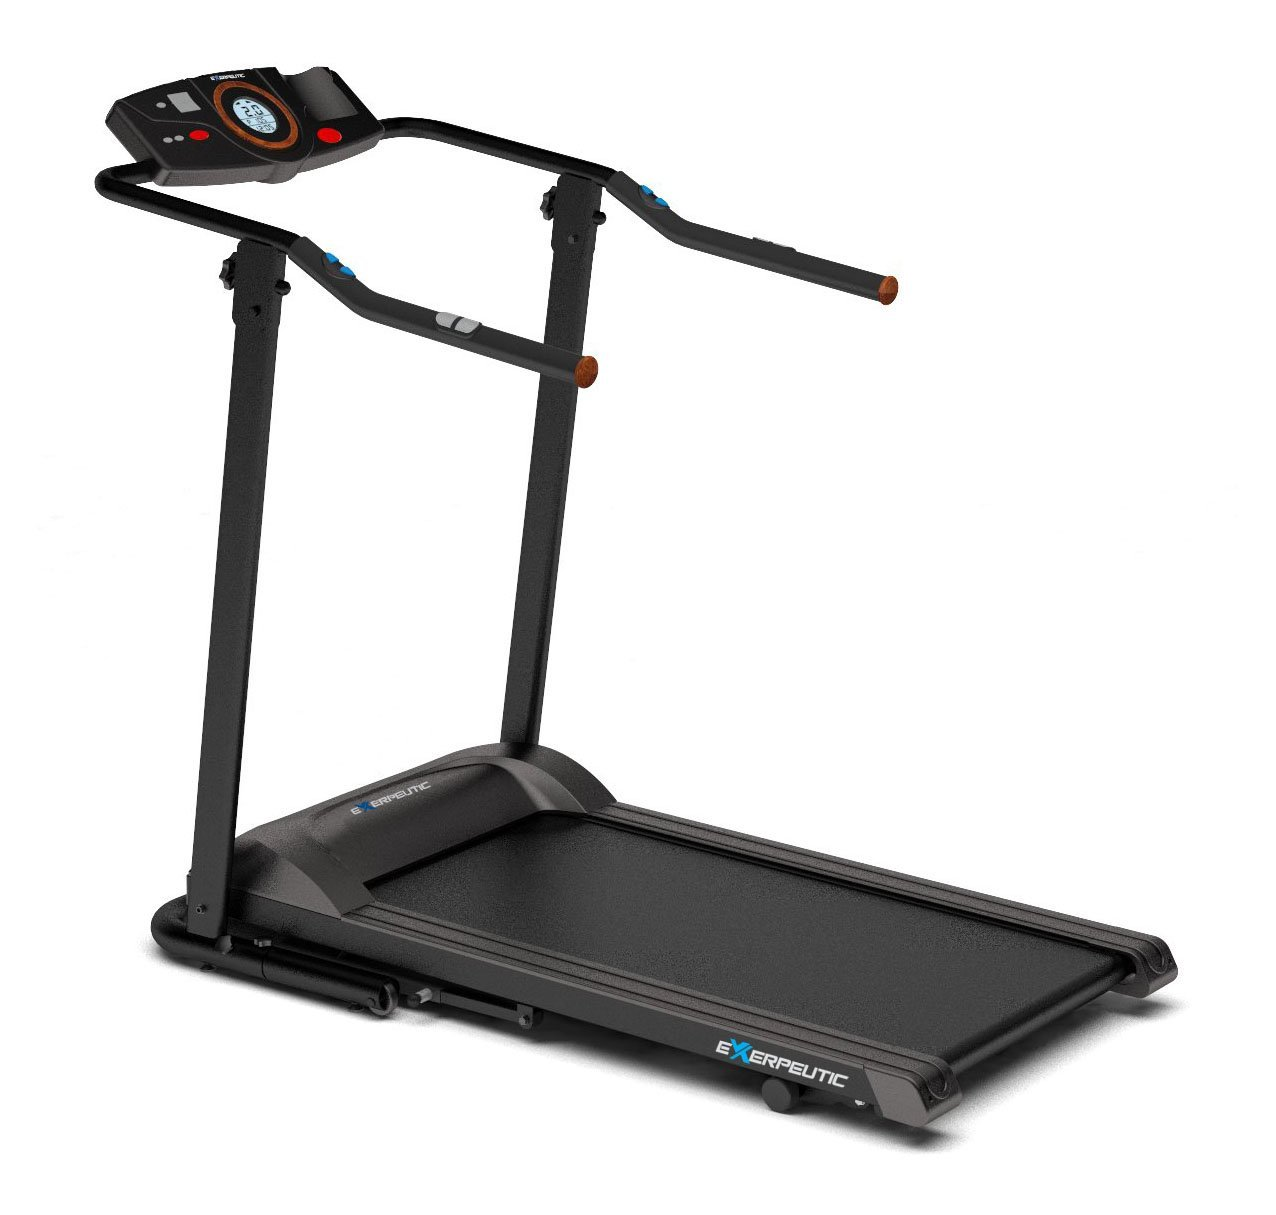 Fitness Machines: Exerpeutic TF1000 Review